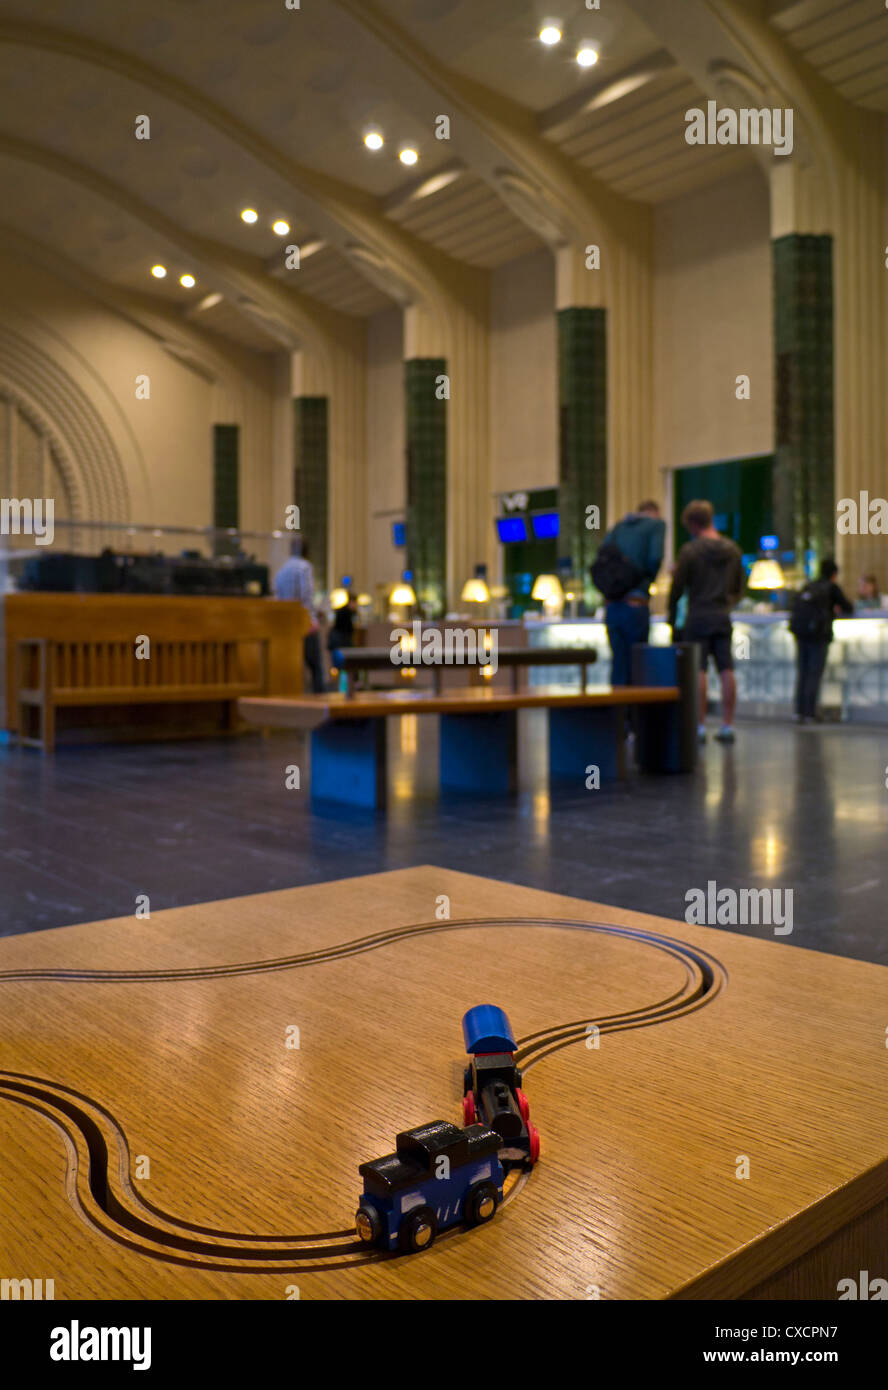 Helsinki railway station ticket and reservations hall with model railway in foreground Helsinki Finland - Stock Image